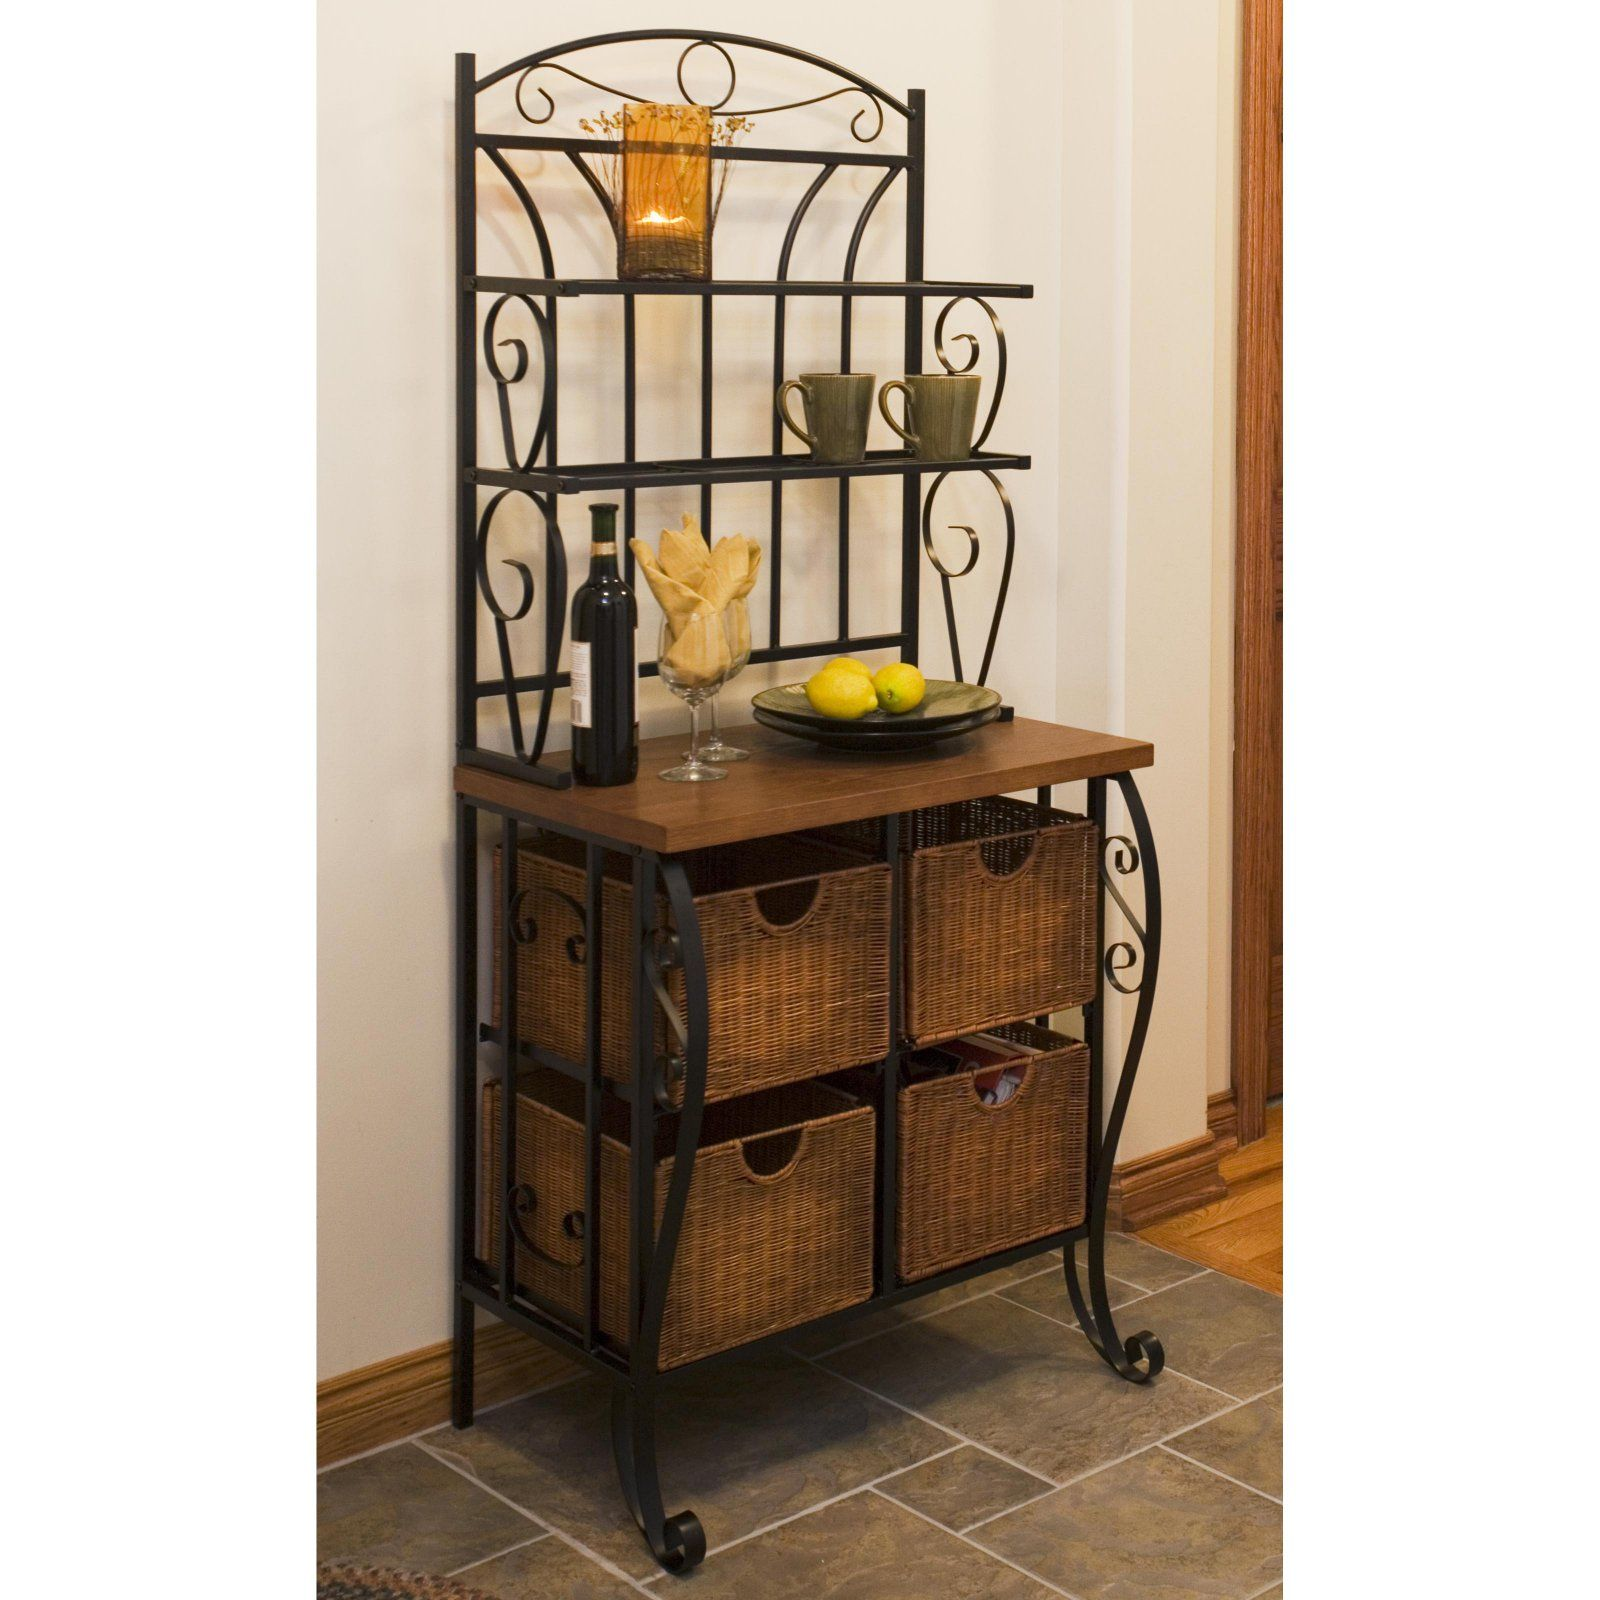 Southern Enterprises Iron Wicker Bakers Rack Wicker Baskets